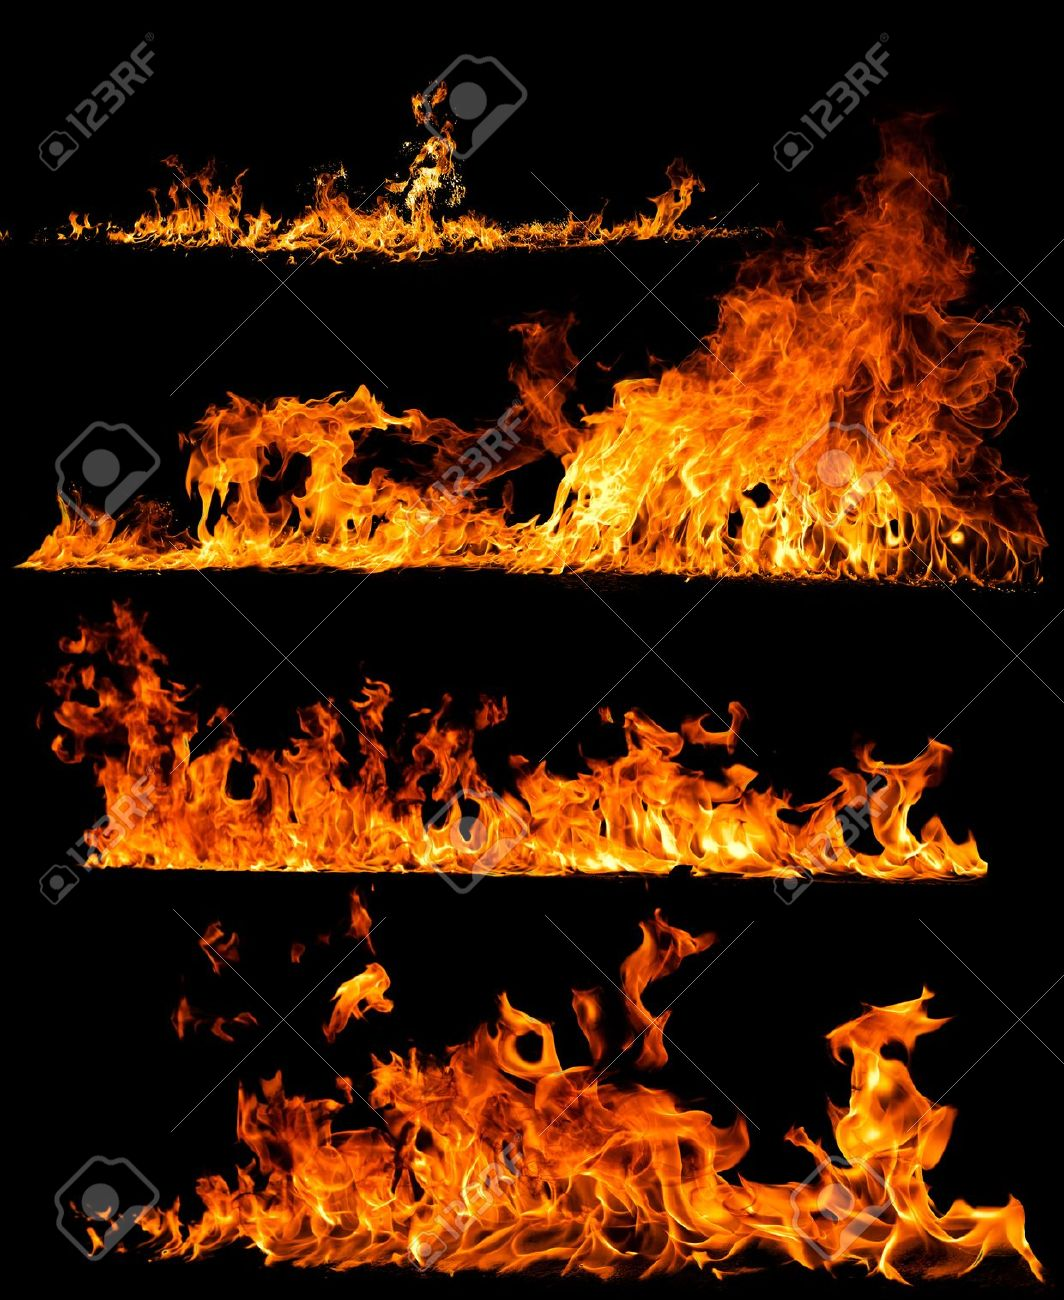 High resolution fire collection isolated on black background Stock Photo - 20736564